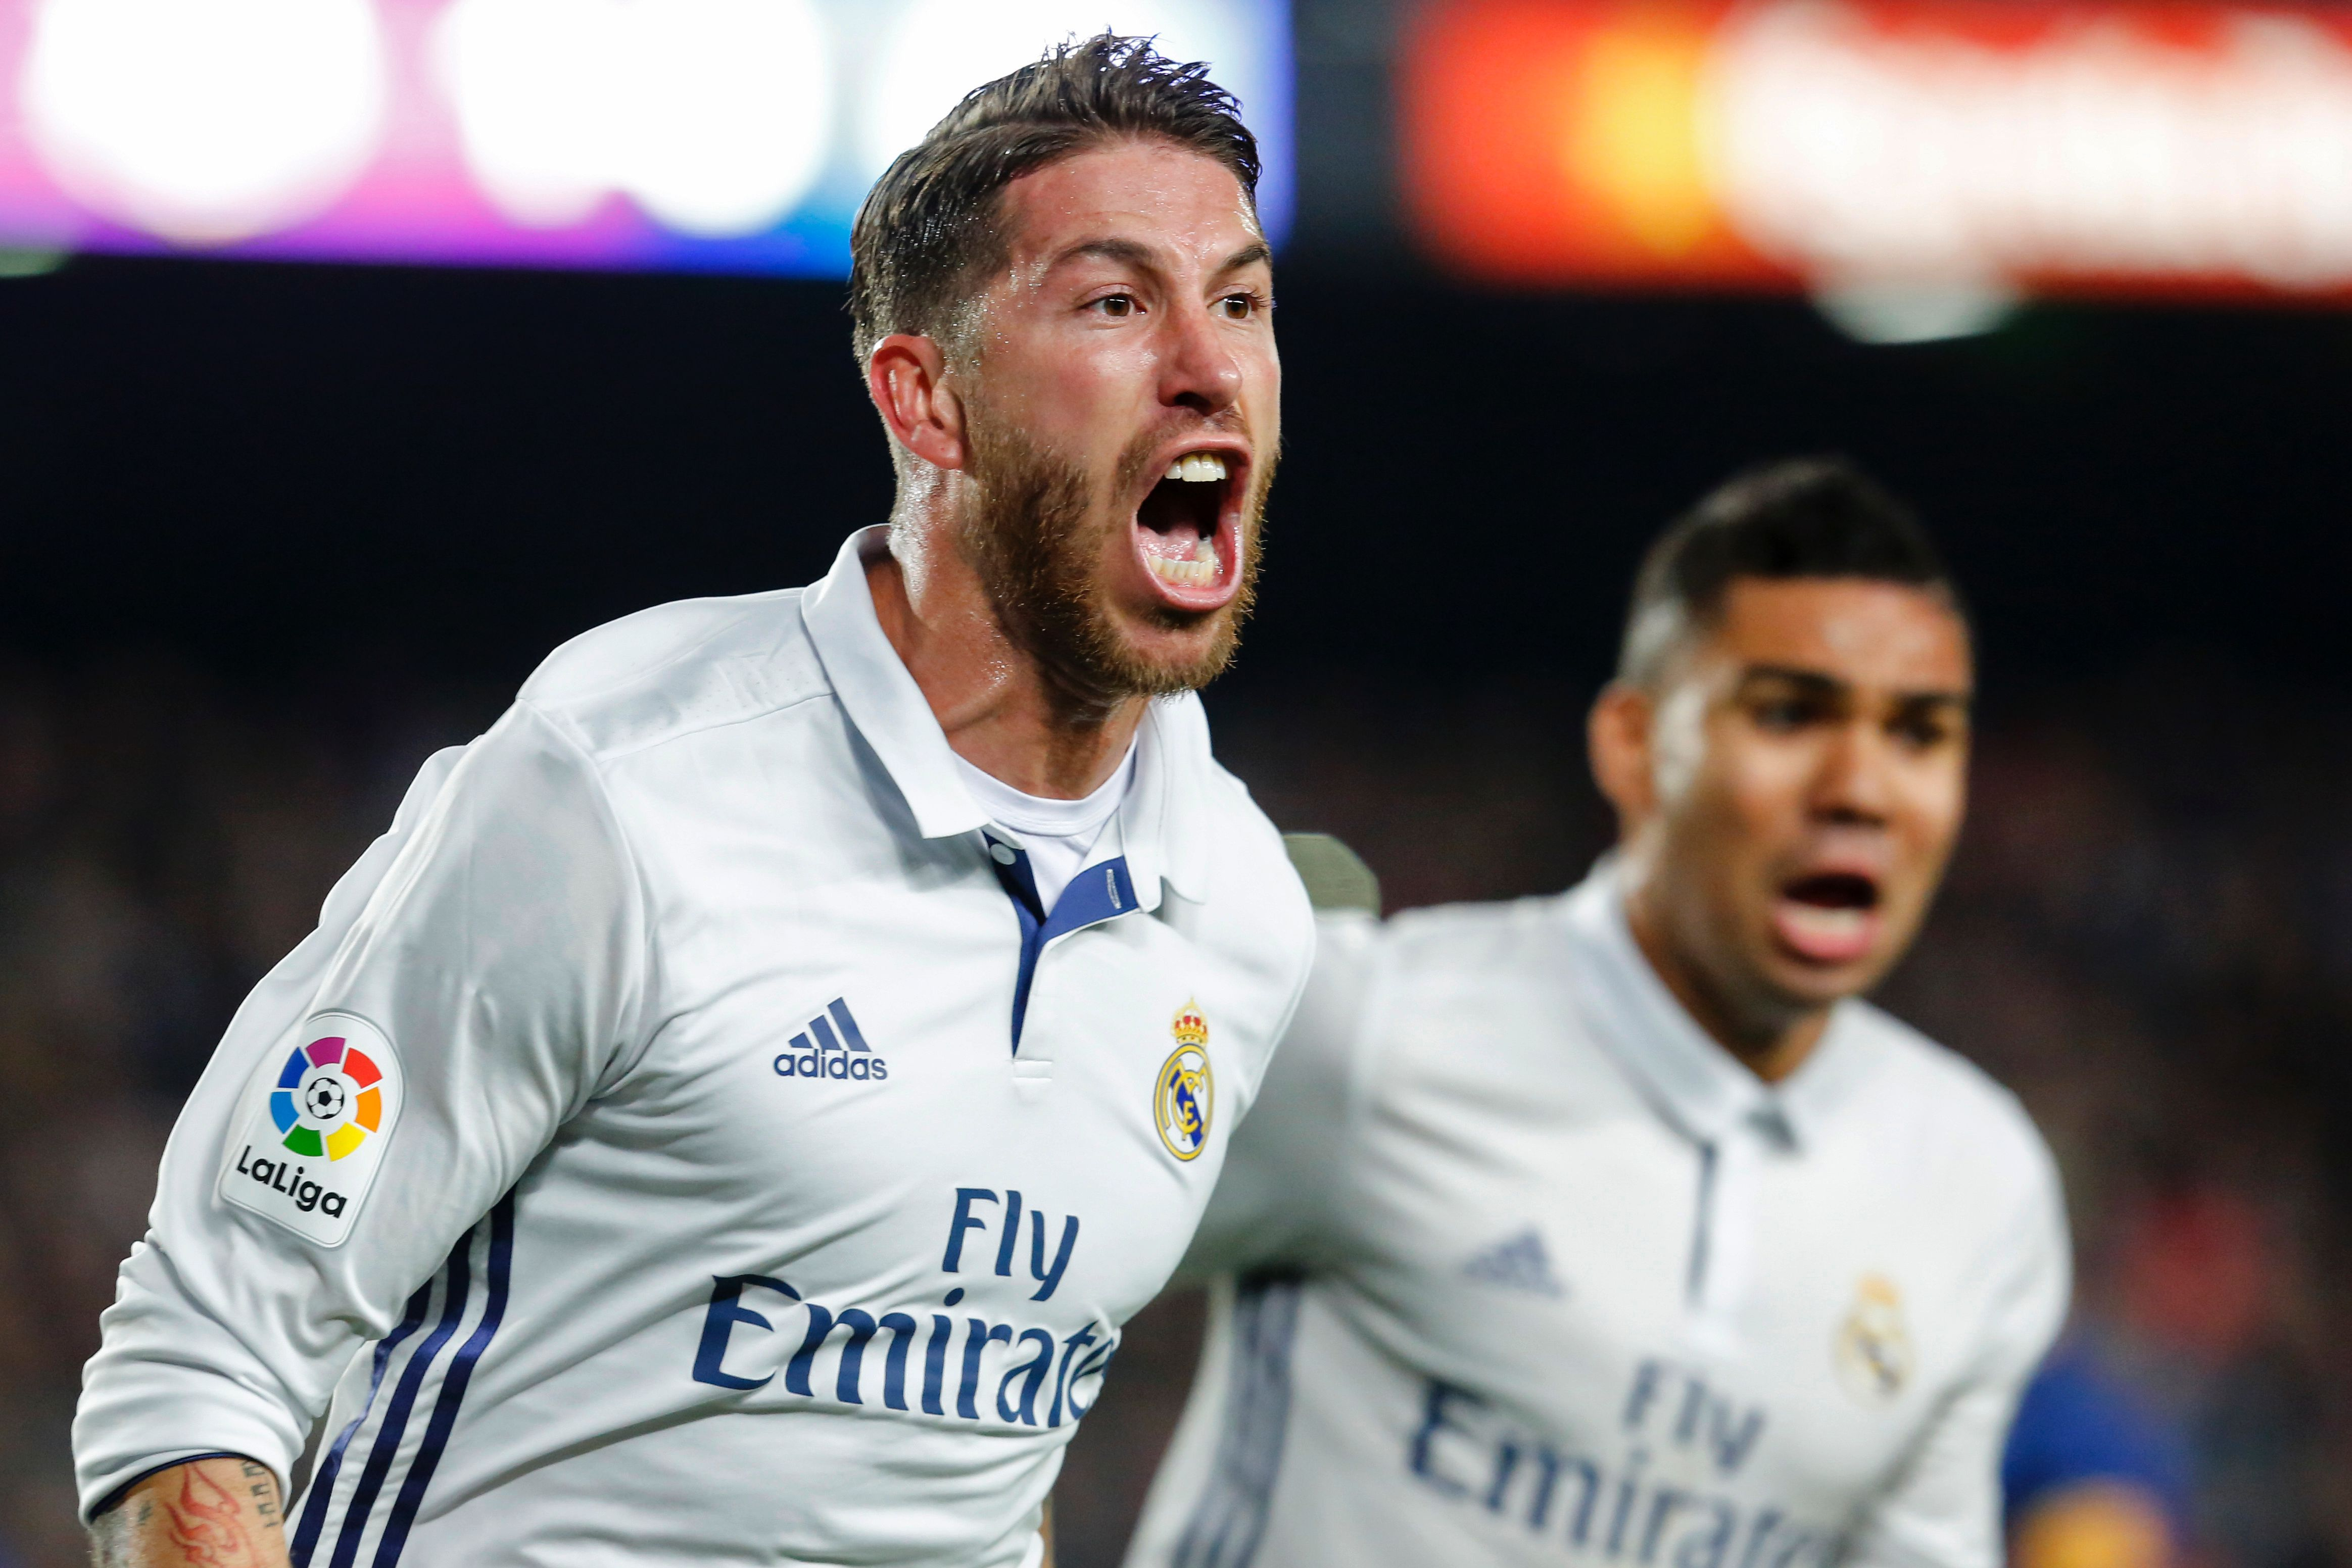 Real Madrid's defender Sergio Ramos celebrates after scoring the equalizer during the Spanish league football match FC Barcelona vs Real Madrid CF at the Camp Nou stadium in Barcelona on December 3, 2016. / AFP / PAU BARRENA (Photo credit should read PAU BARRENA/AFP/Getty Images)